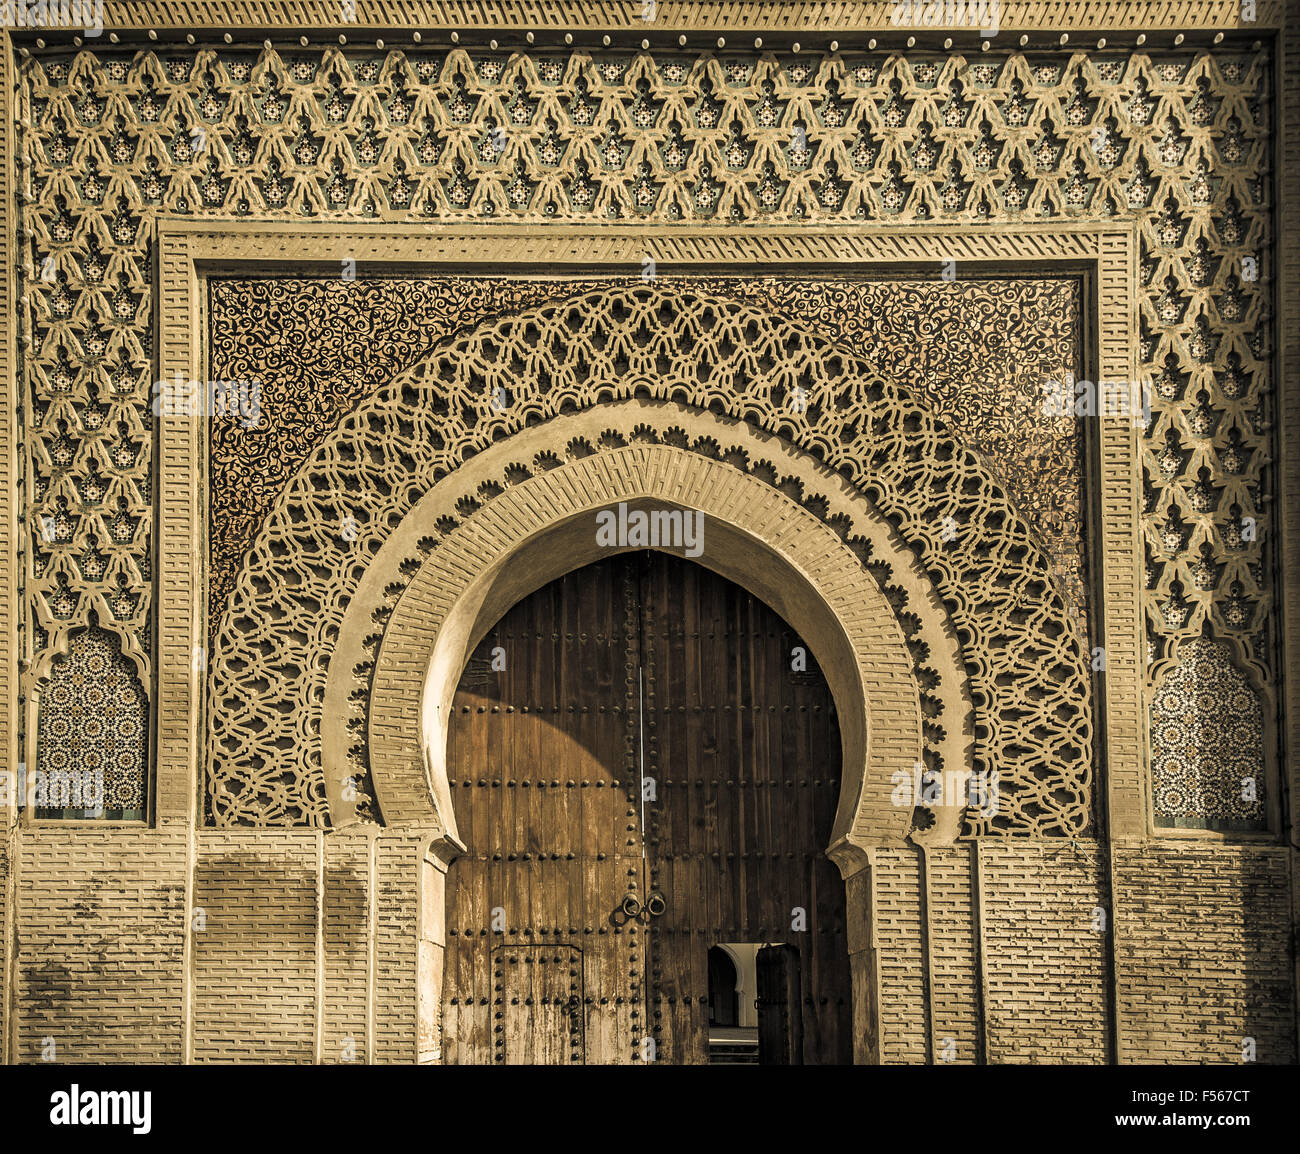 Ancient gates in Meknes, Morocco - Stock Image